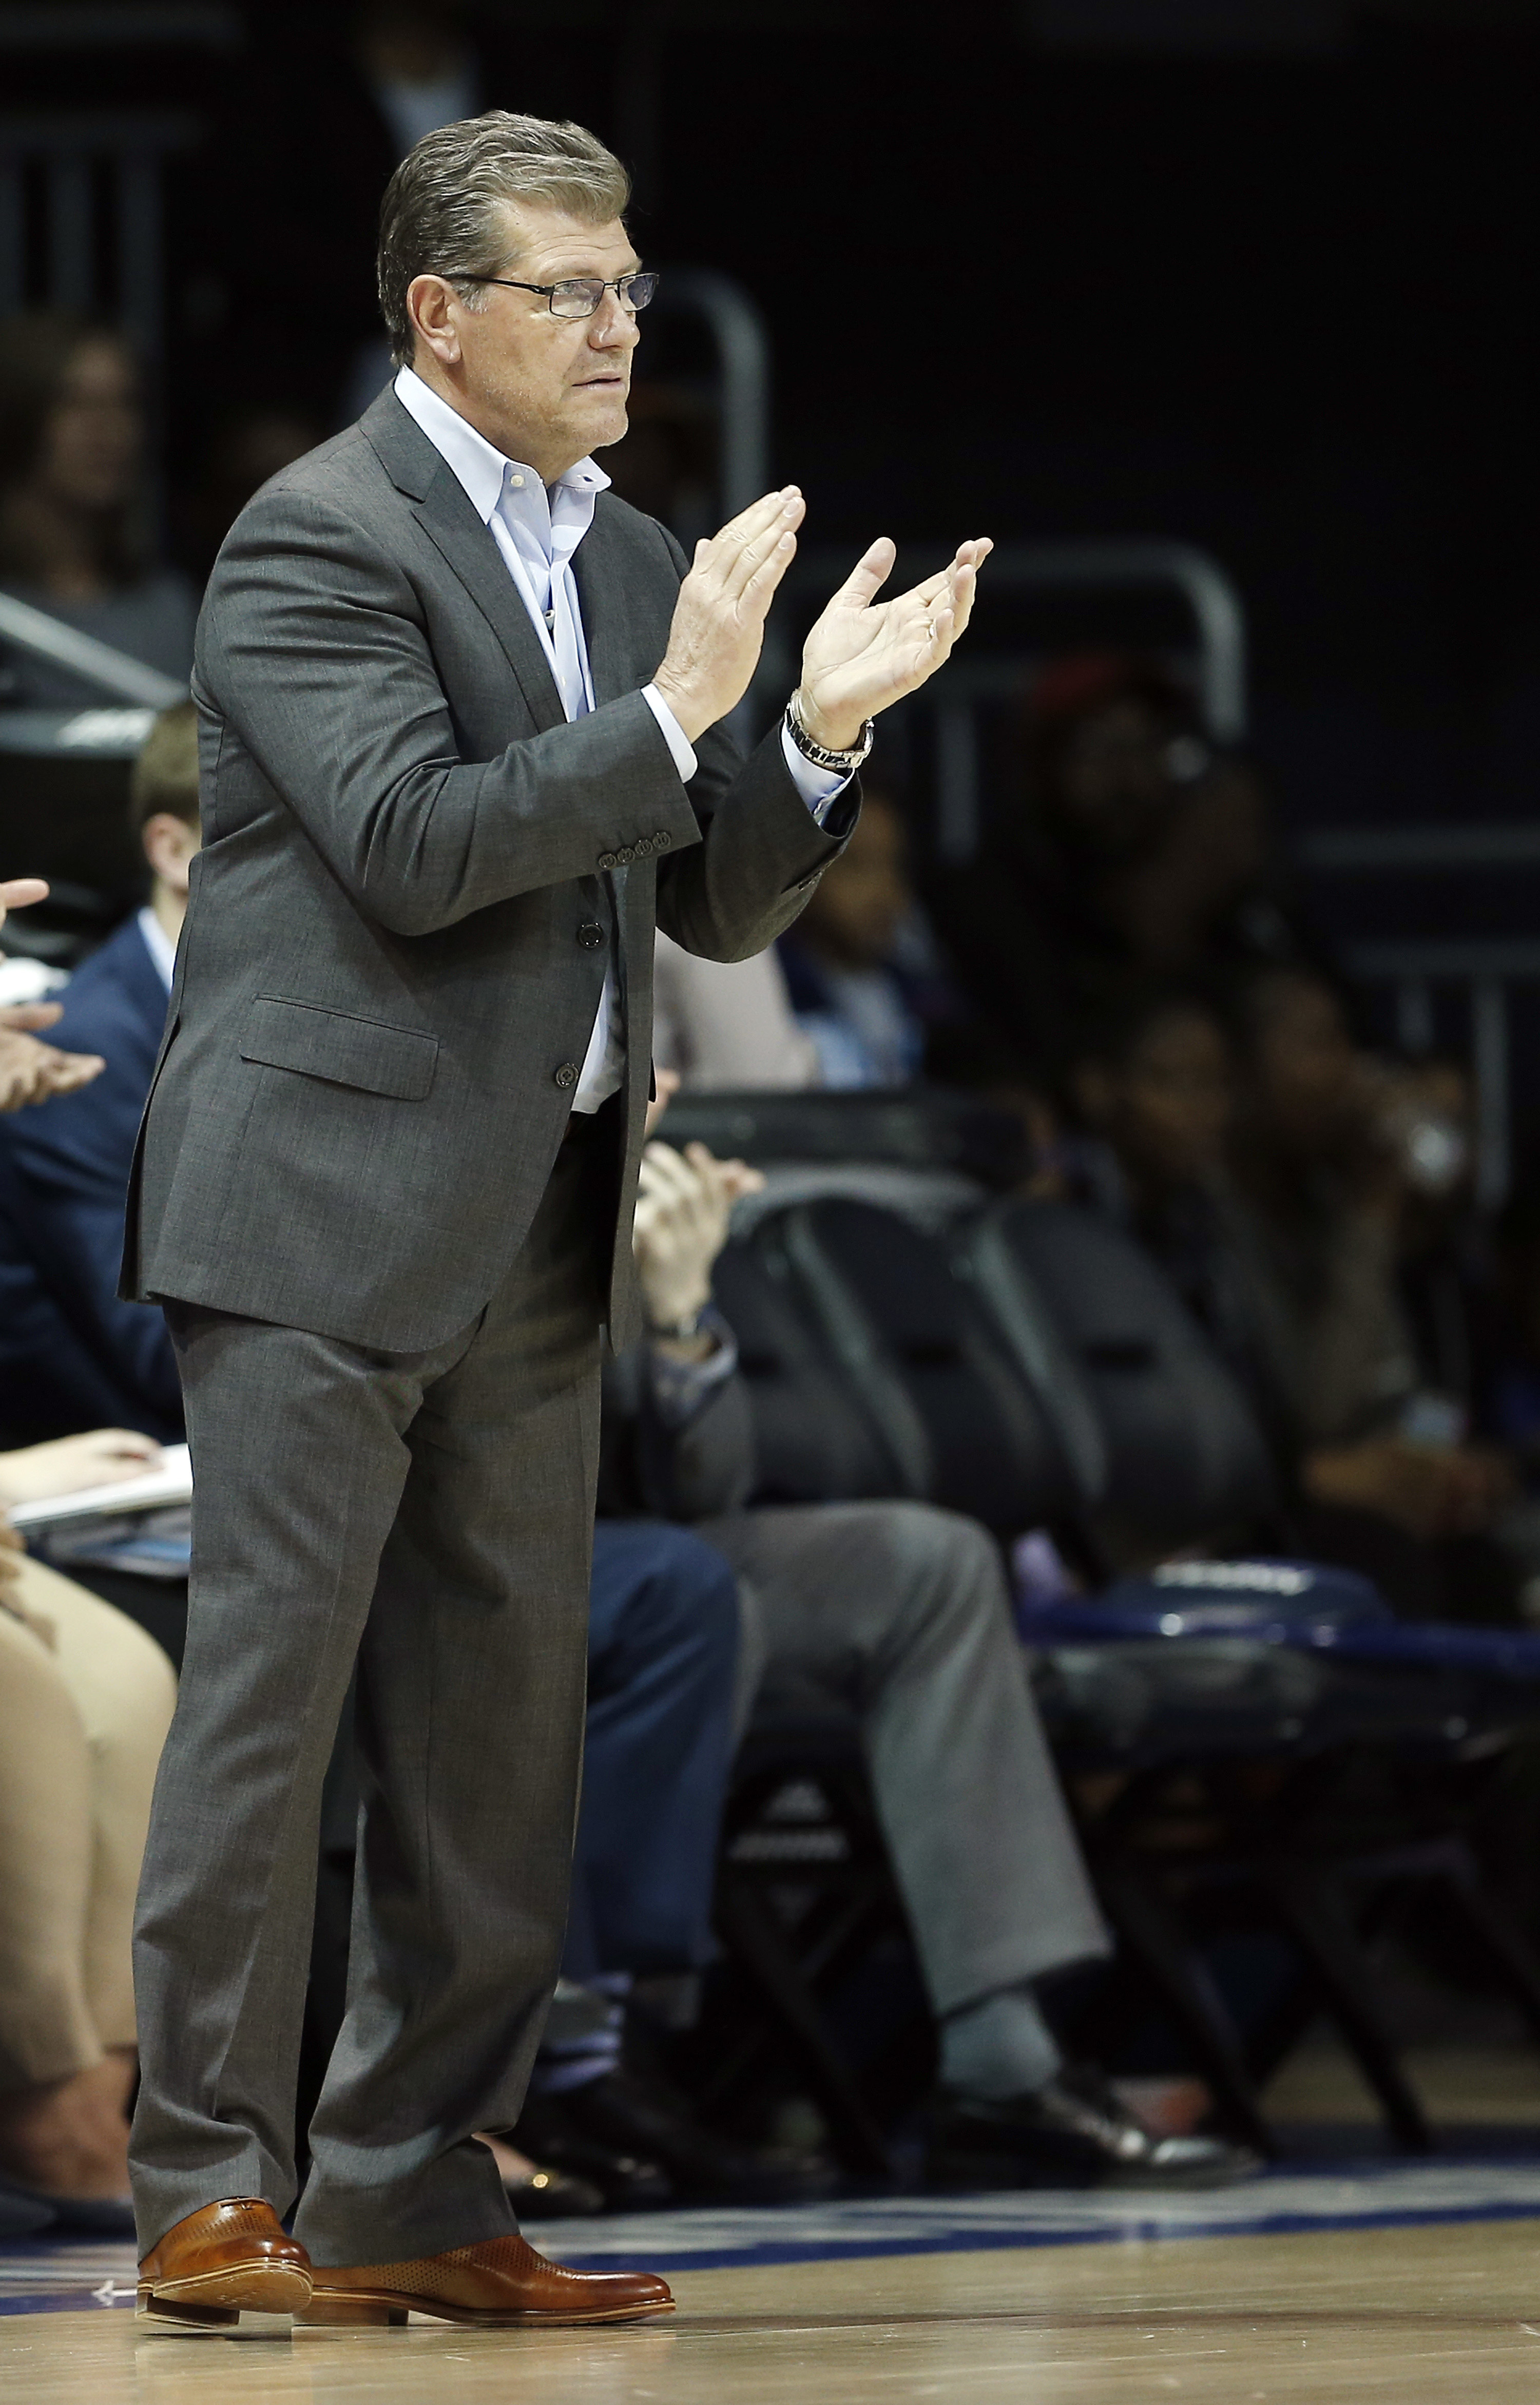 Connecticut head coach Geno Auriemma encourages his team during the first half of an NCAA college basketball game against SMU, Saturday, Jan. 14, 2017, in Dallas. Connecticut won 88-48, their 91st straight win. (AP Photo/Brandon Wade)